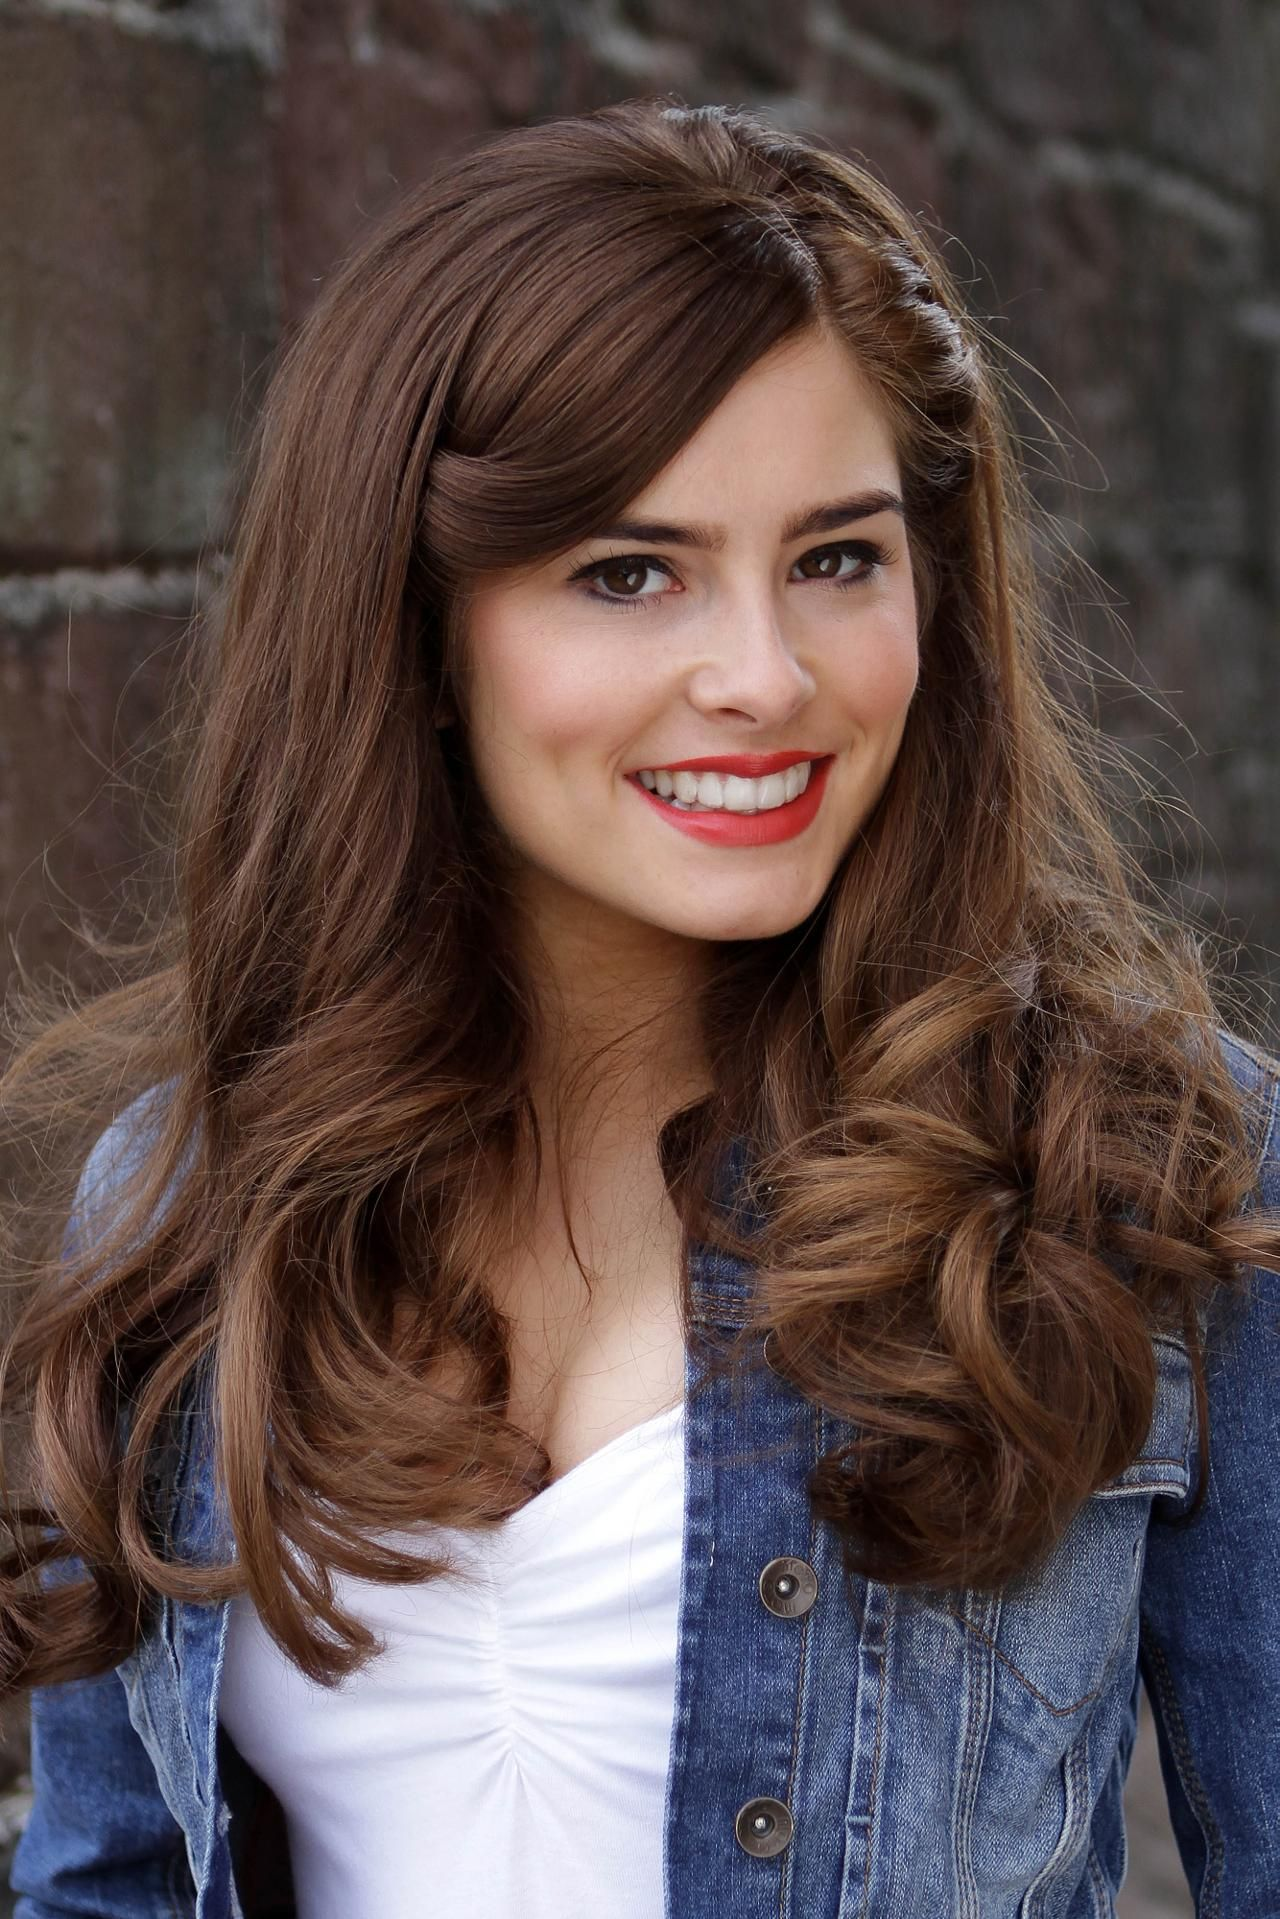 rachel shenton barristerrachel shenton and cheryl cole, rachel shenton, rachel shenton instagram, rachel shenton switched at birth, rachel shenton gif, rachel shenton hot, rachel shenton feet, rachel shenton twitter, rachel shenton barrister, rachel shenton imdb, rachel shenton boyfriend, rachel shenton bum, rachel shenton pregnant, rachel shenton bikini, rachel shenton waterloo road, rachel shenton tumblr, rachel shenton height